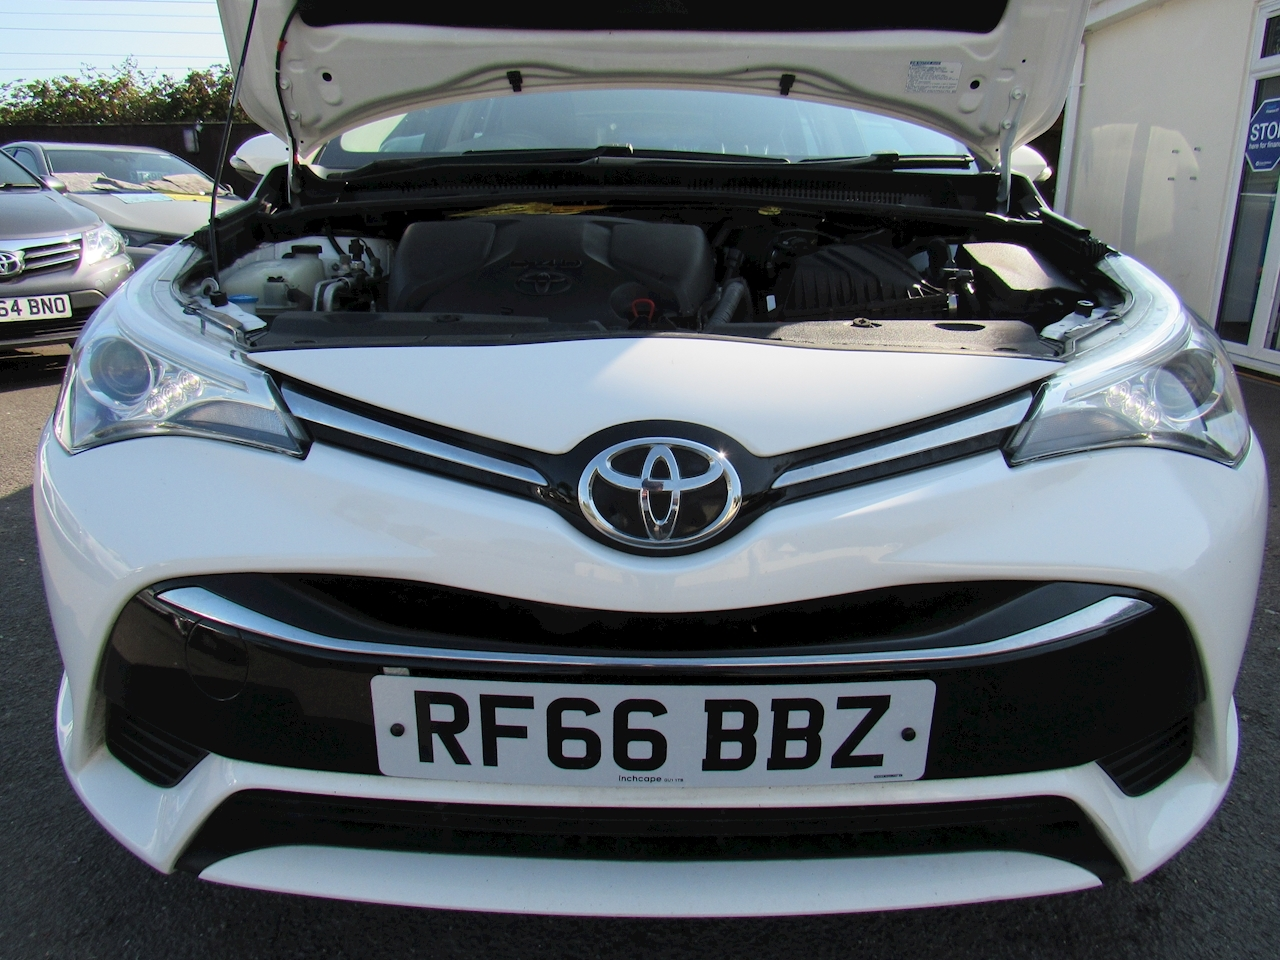 Toyota Avensis Business Edition Touring Sports 1.6 Manual Diesel